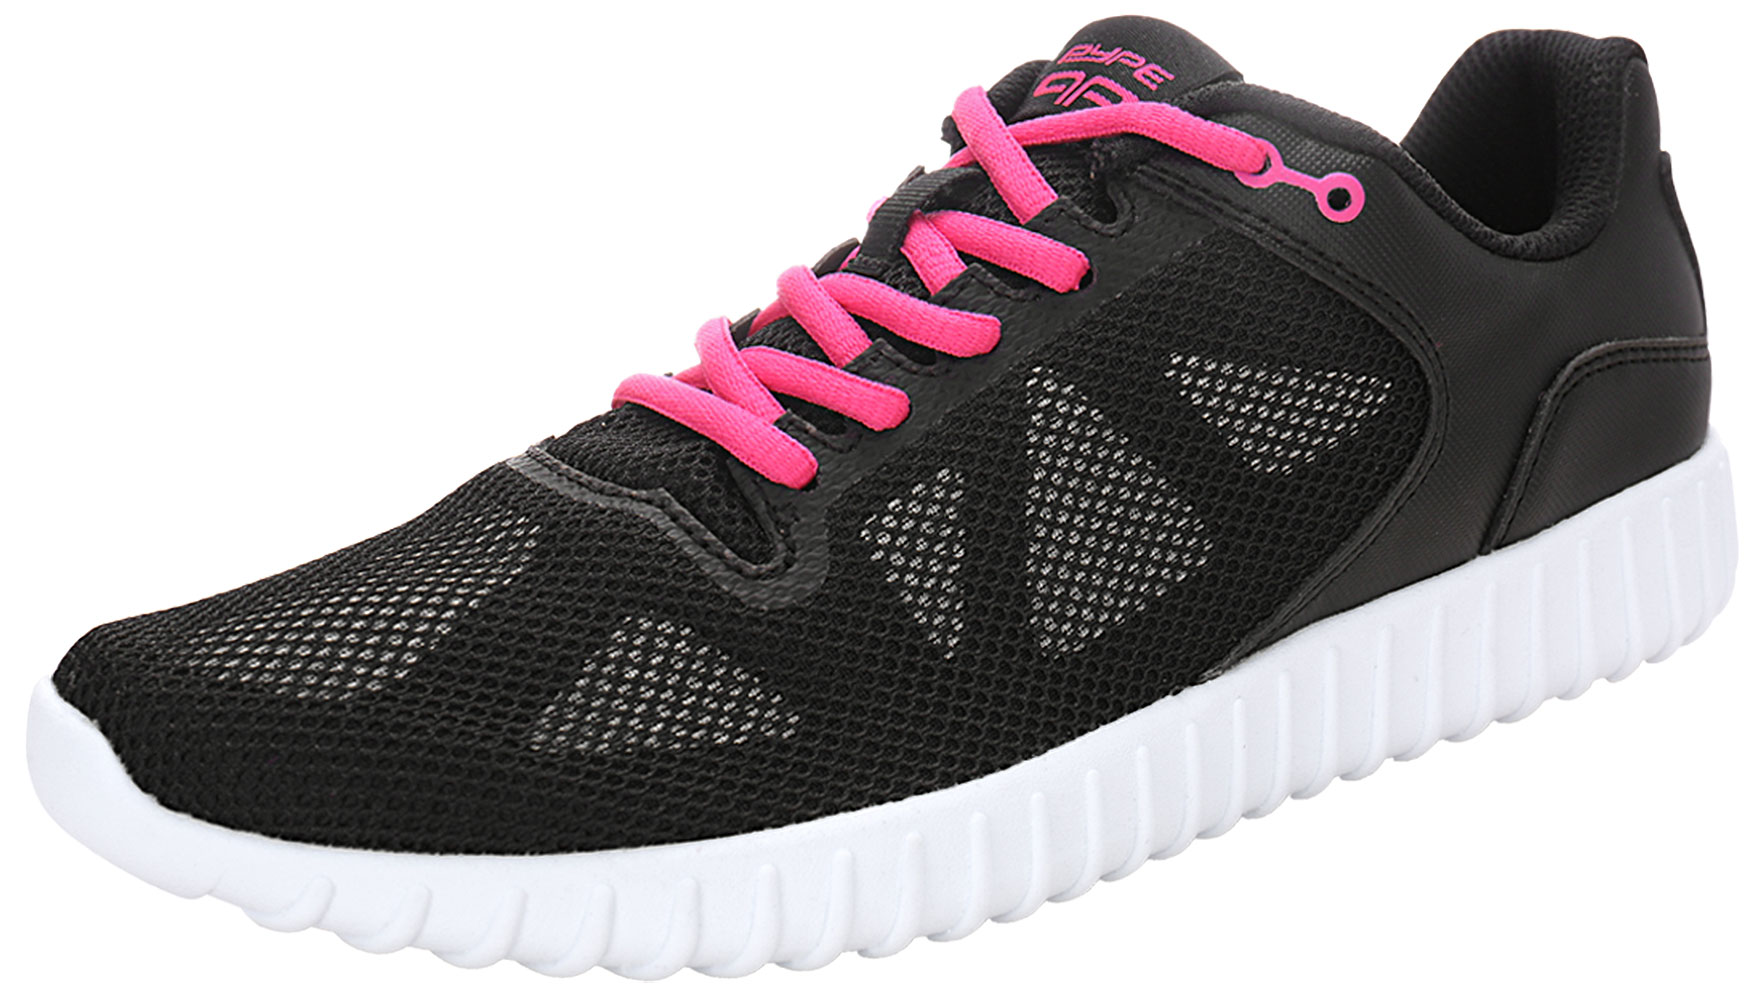 PYPE Women Geometric Prints Lace Up Mesh Training Shoes Black US 7.5